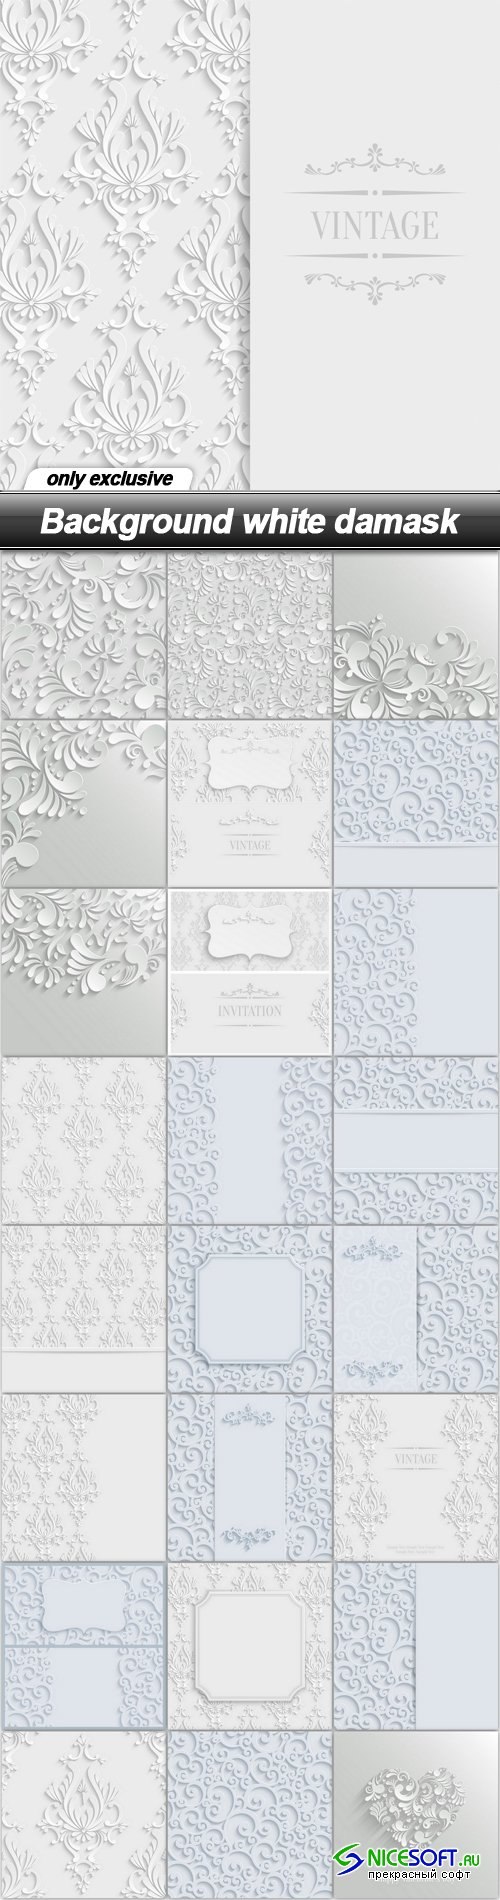 Background white damask